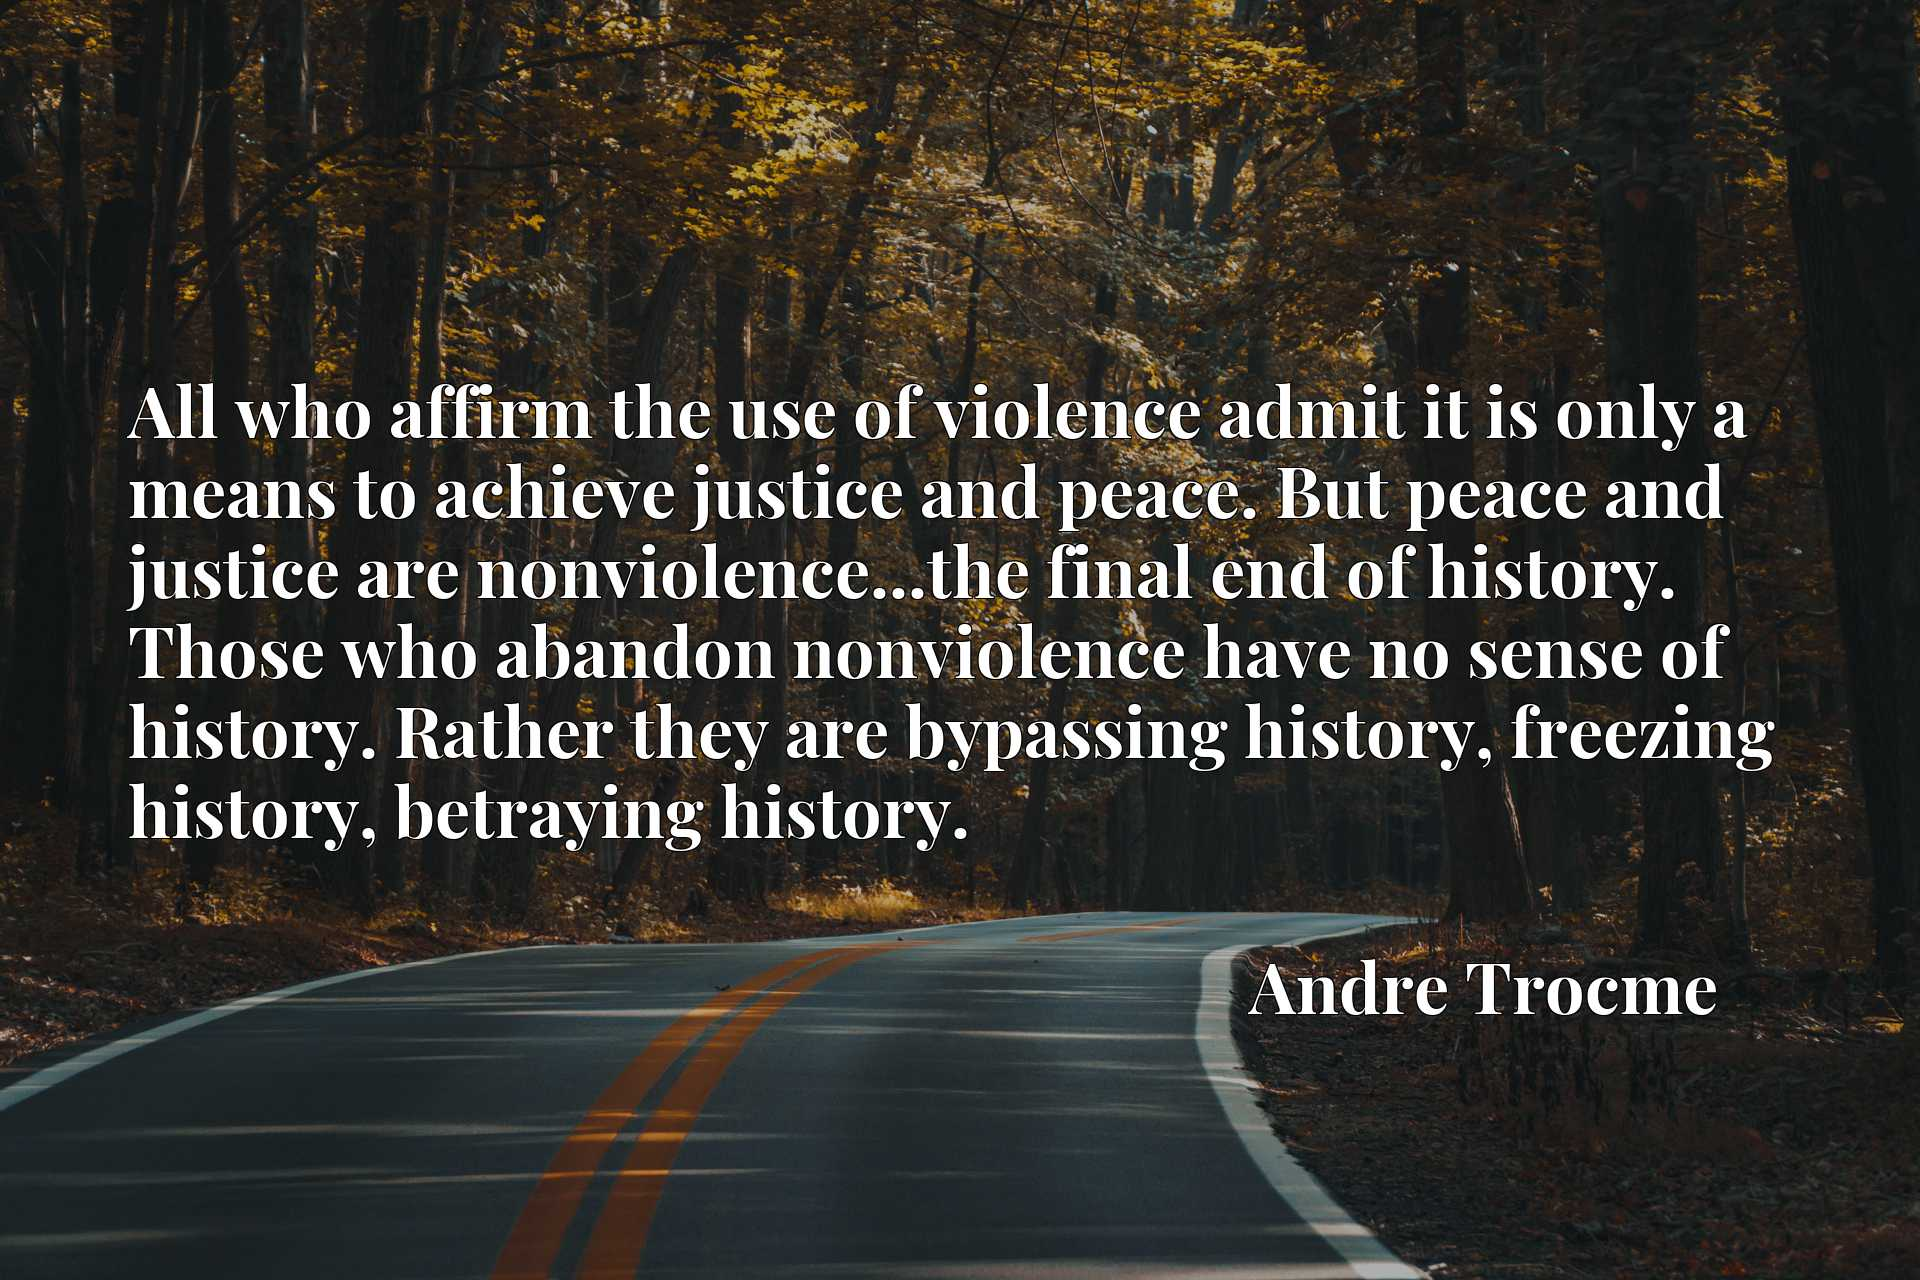 All who affirm the use of violence admit it is only a means to achieve justice and peace. But peace and justice are nonviolence...the final end of history. Those who abandon nonviolence have no sense of history. Rather they are bypassing history, freezing history, betraying history.